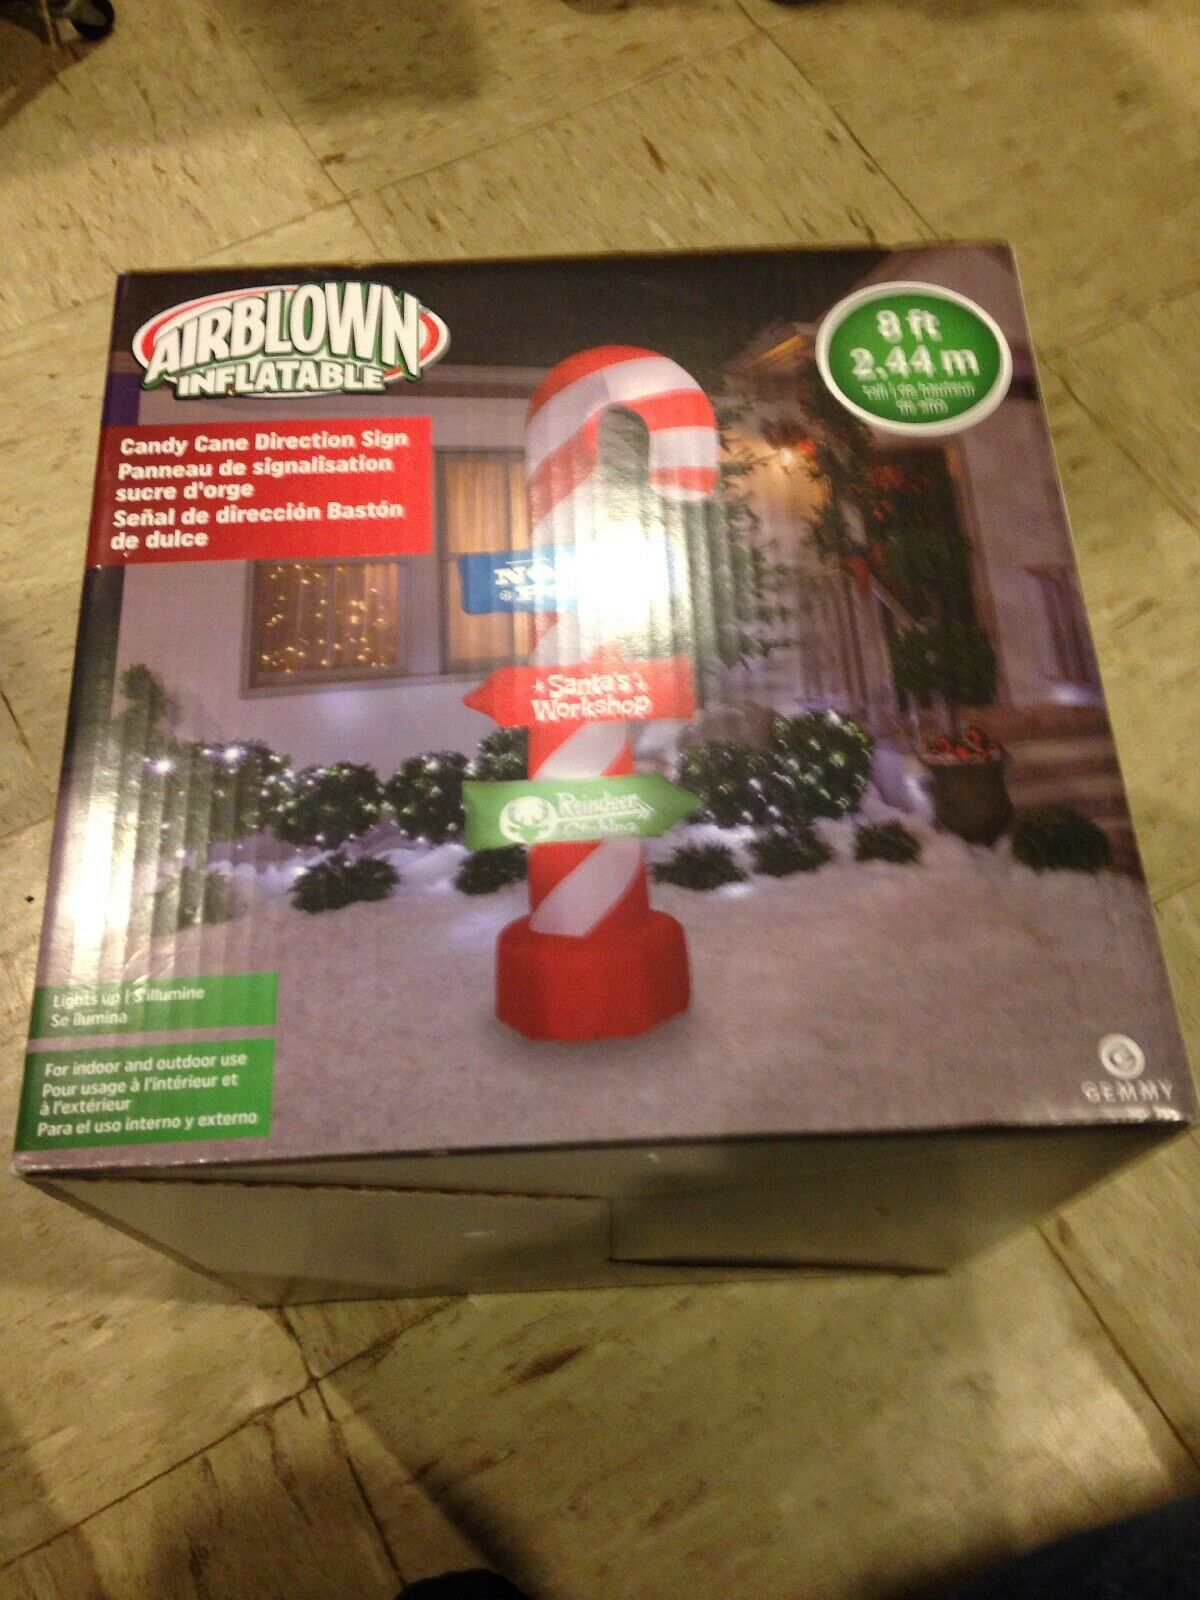 Sucre D Orge Exterieur 8-ft. gemmy directional candy cane airblown inflatable christmas yard pre  lit